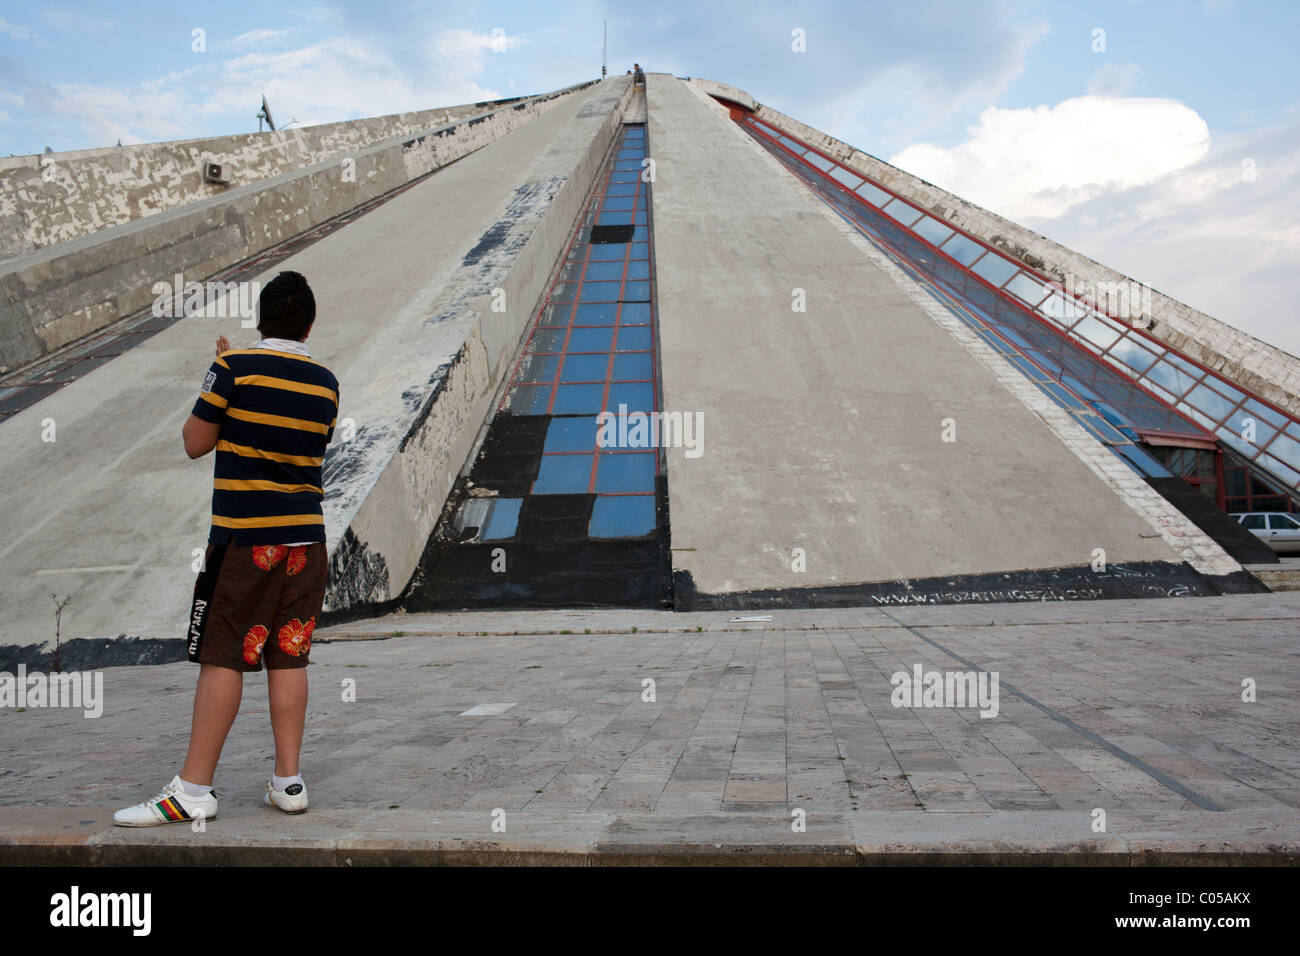 Enver Hoxha Mausoleum known as the Pyramid in Tirana. - Stock Image